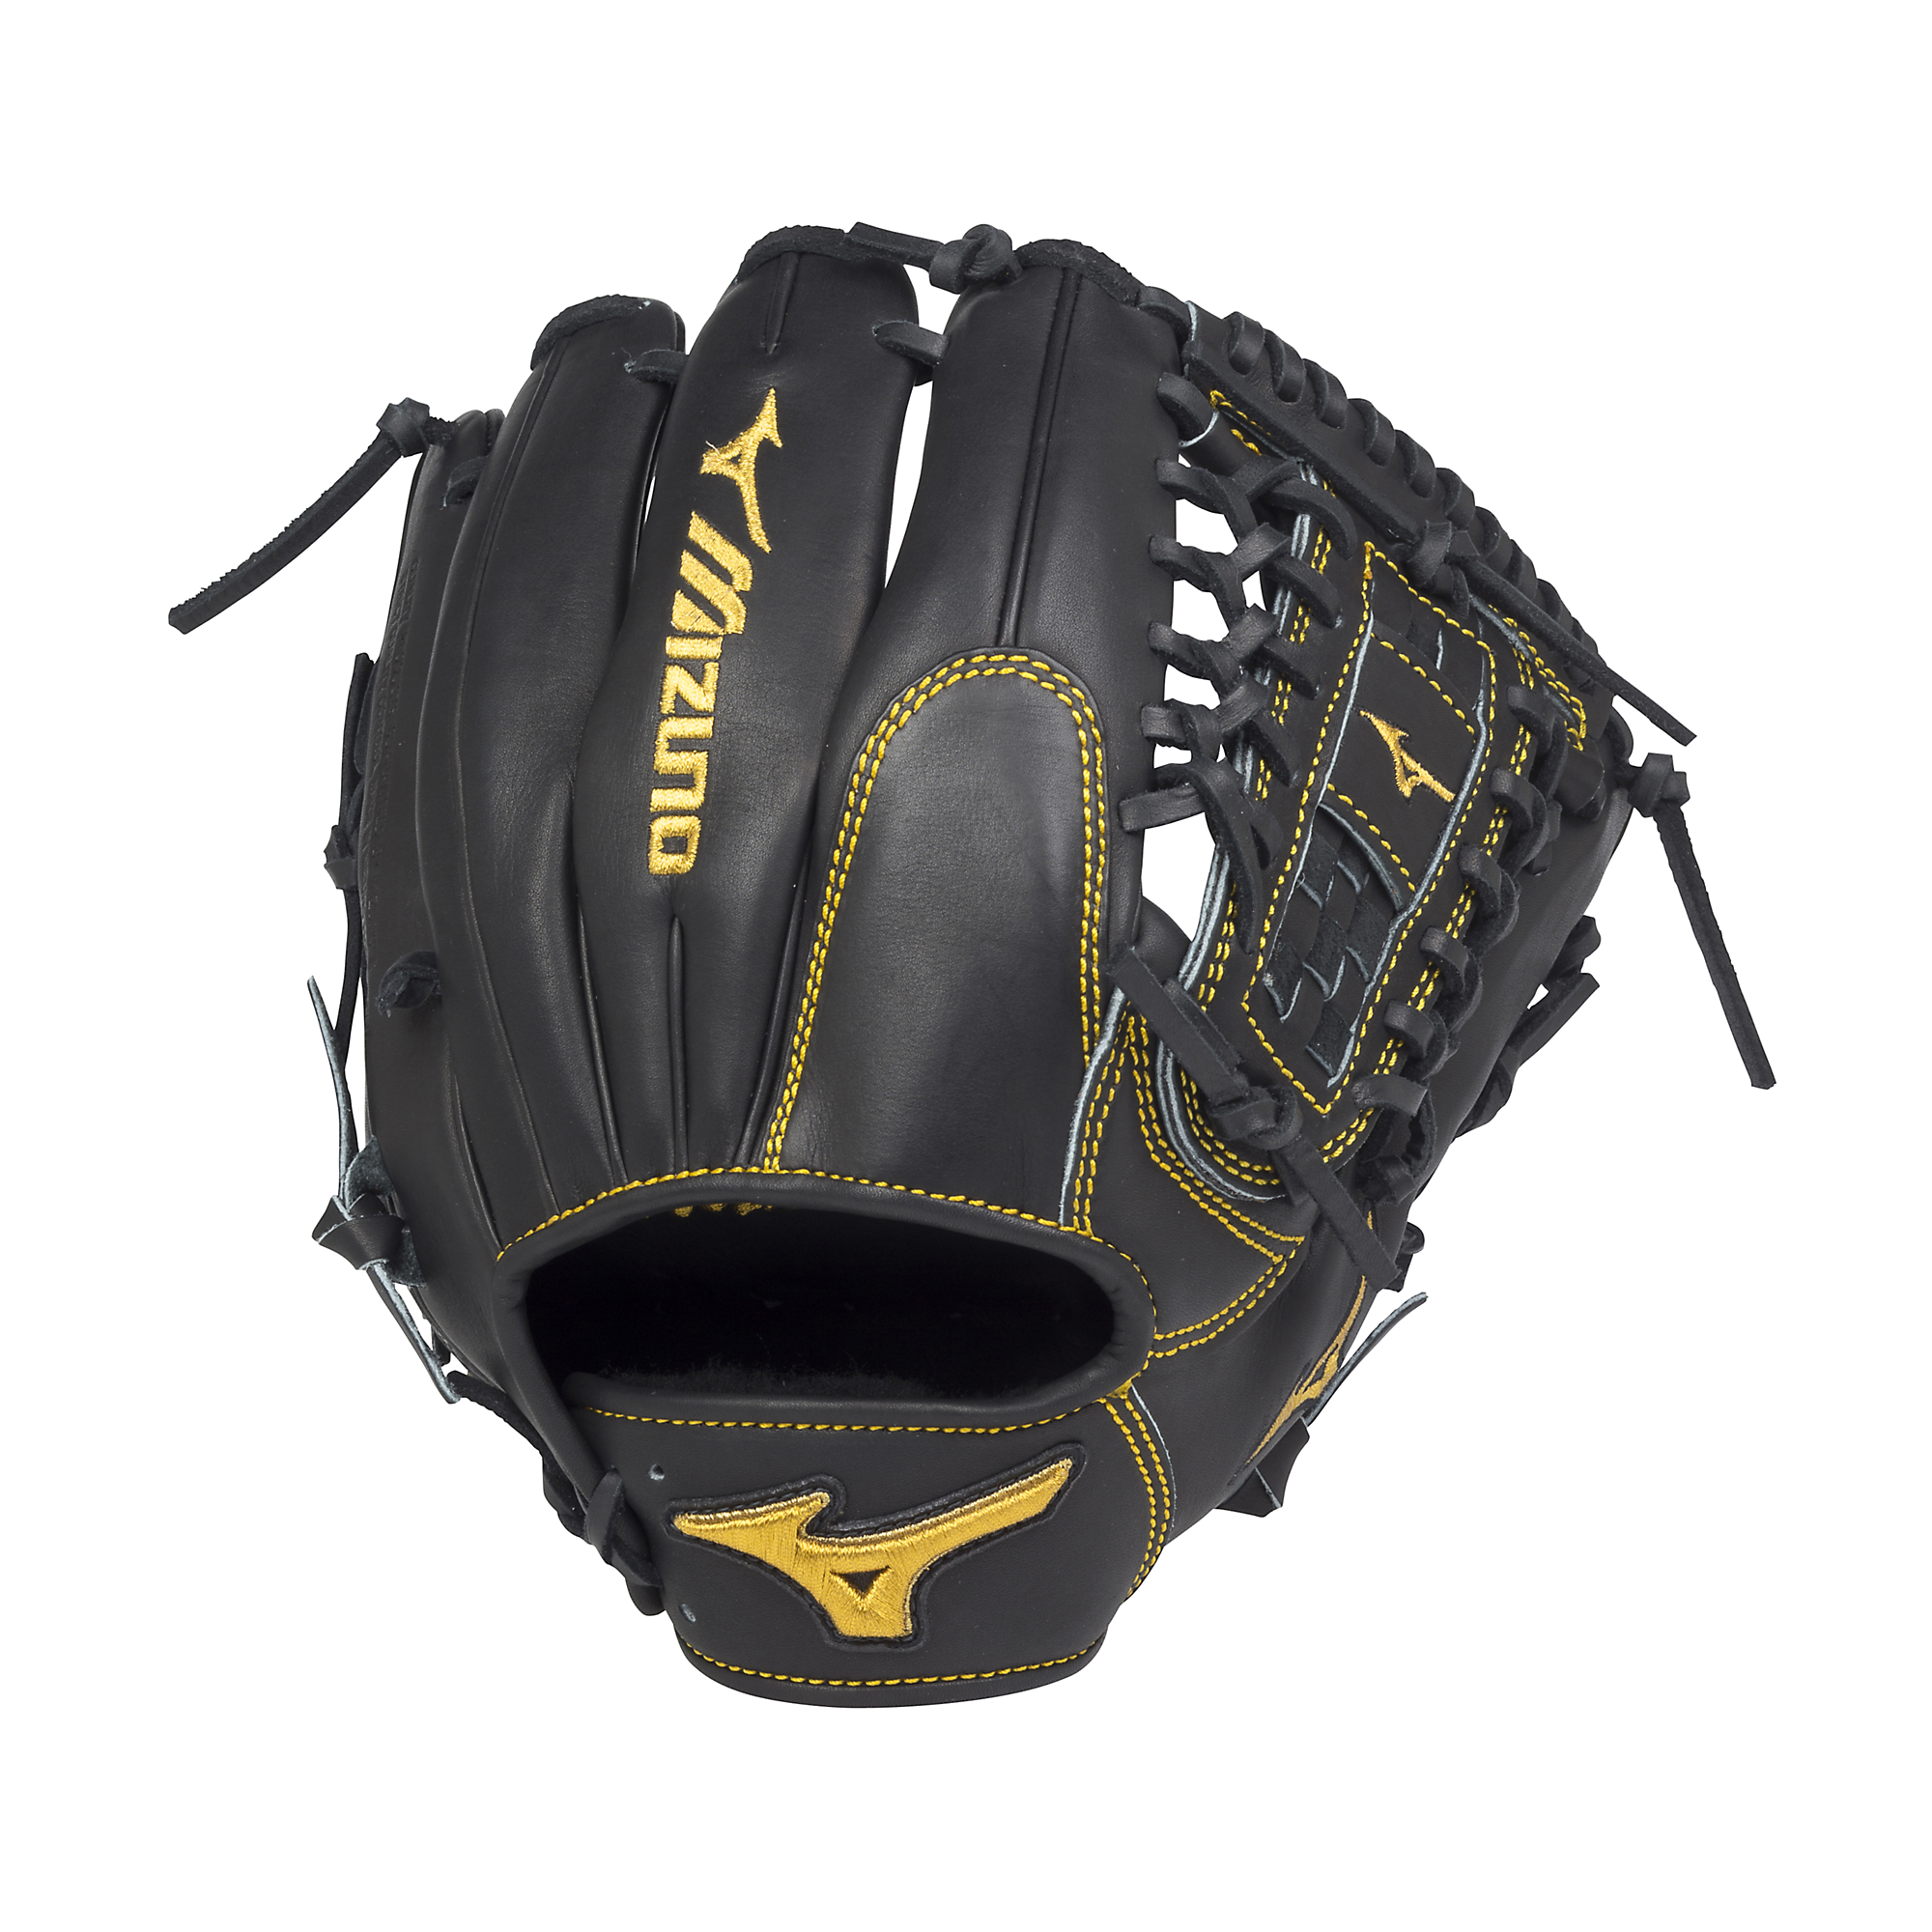 "Mizuno Pro Limited Edition Pitcher Baseball Glove 12"" by Mizuno"